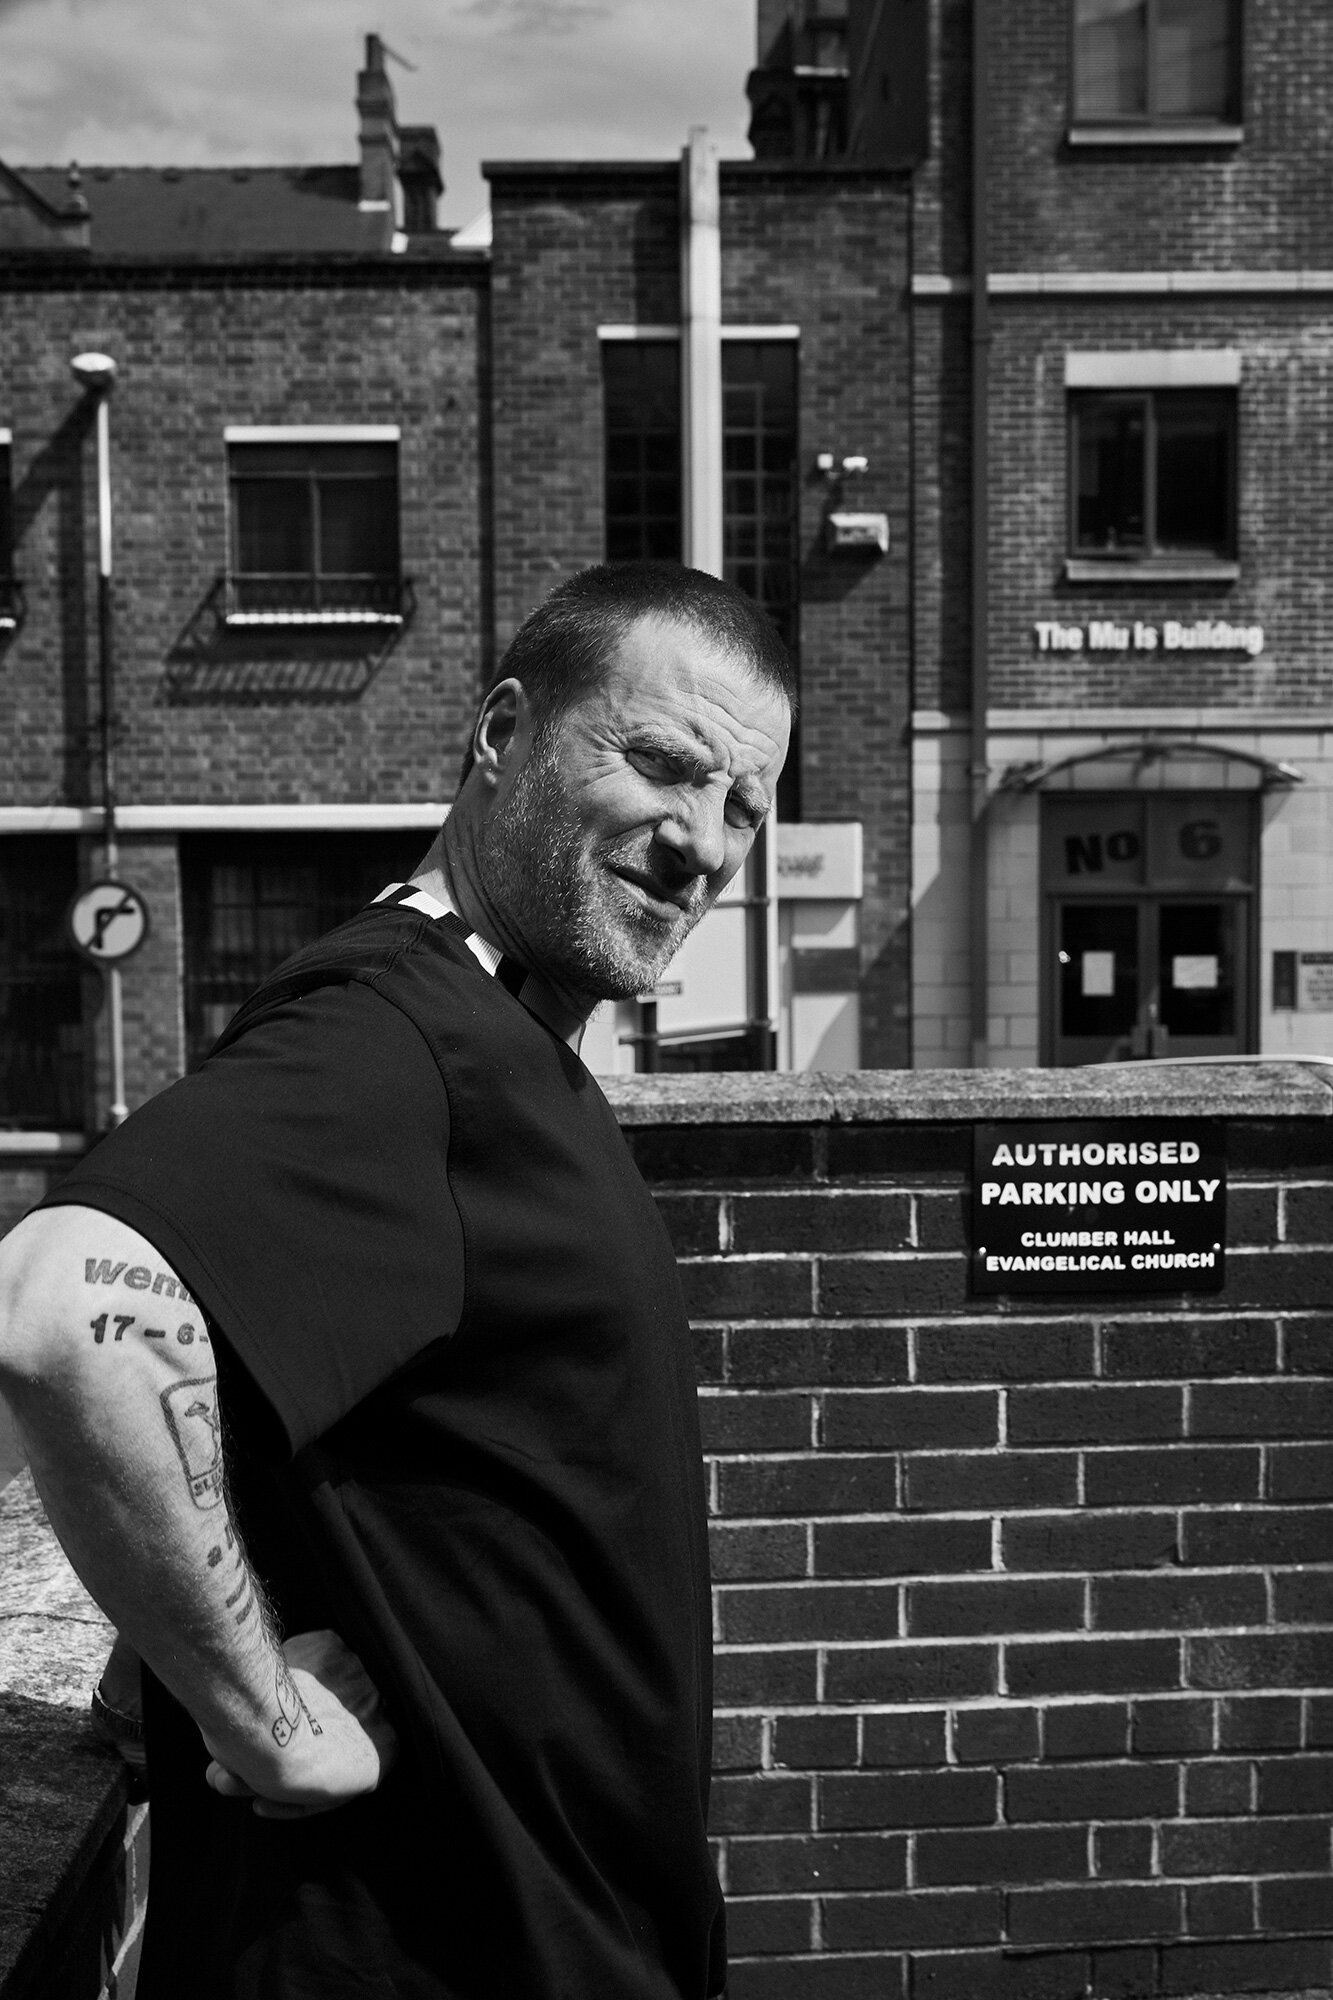 Jason_Williamson_Sleaford_Mods_0095.jpg